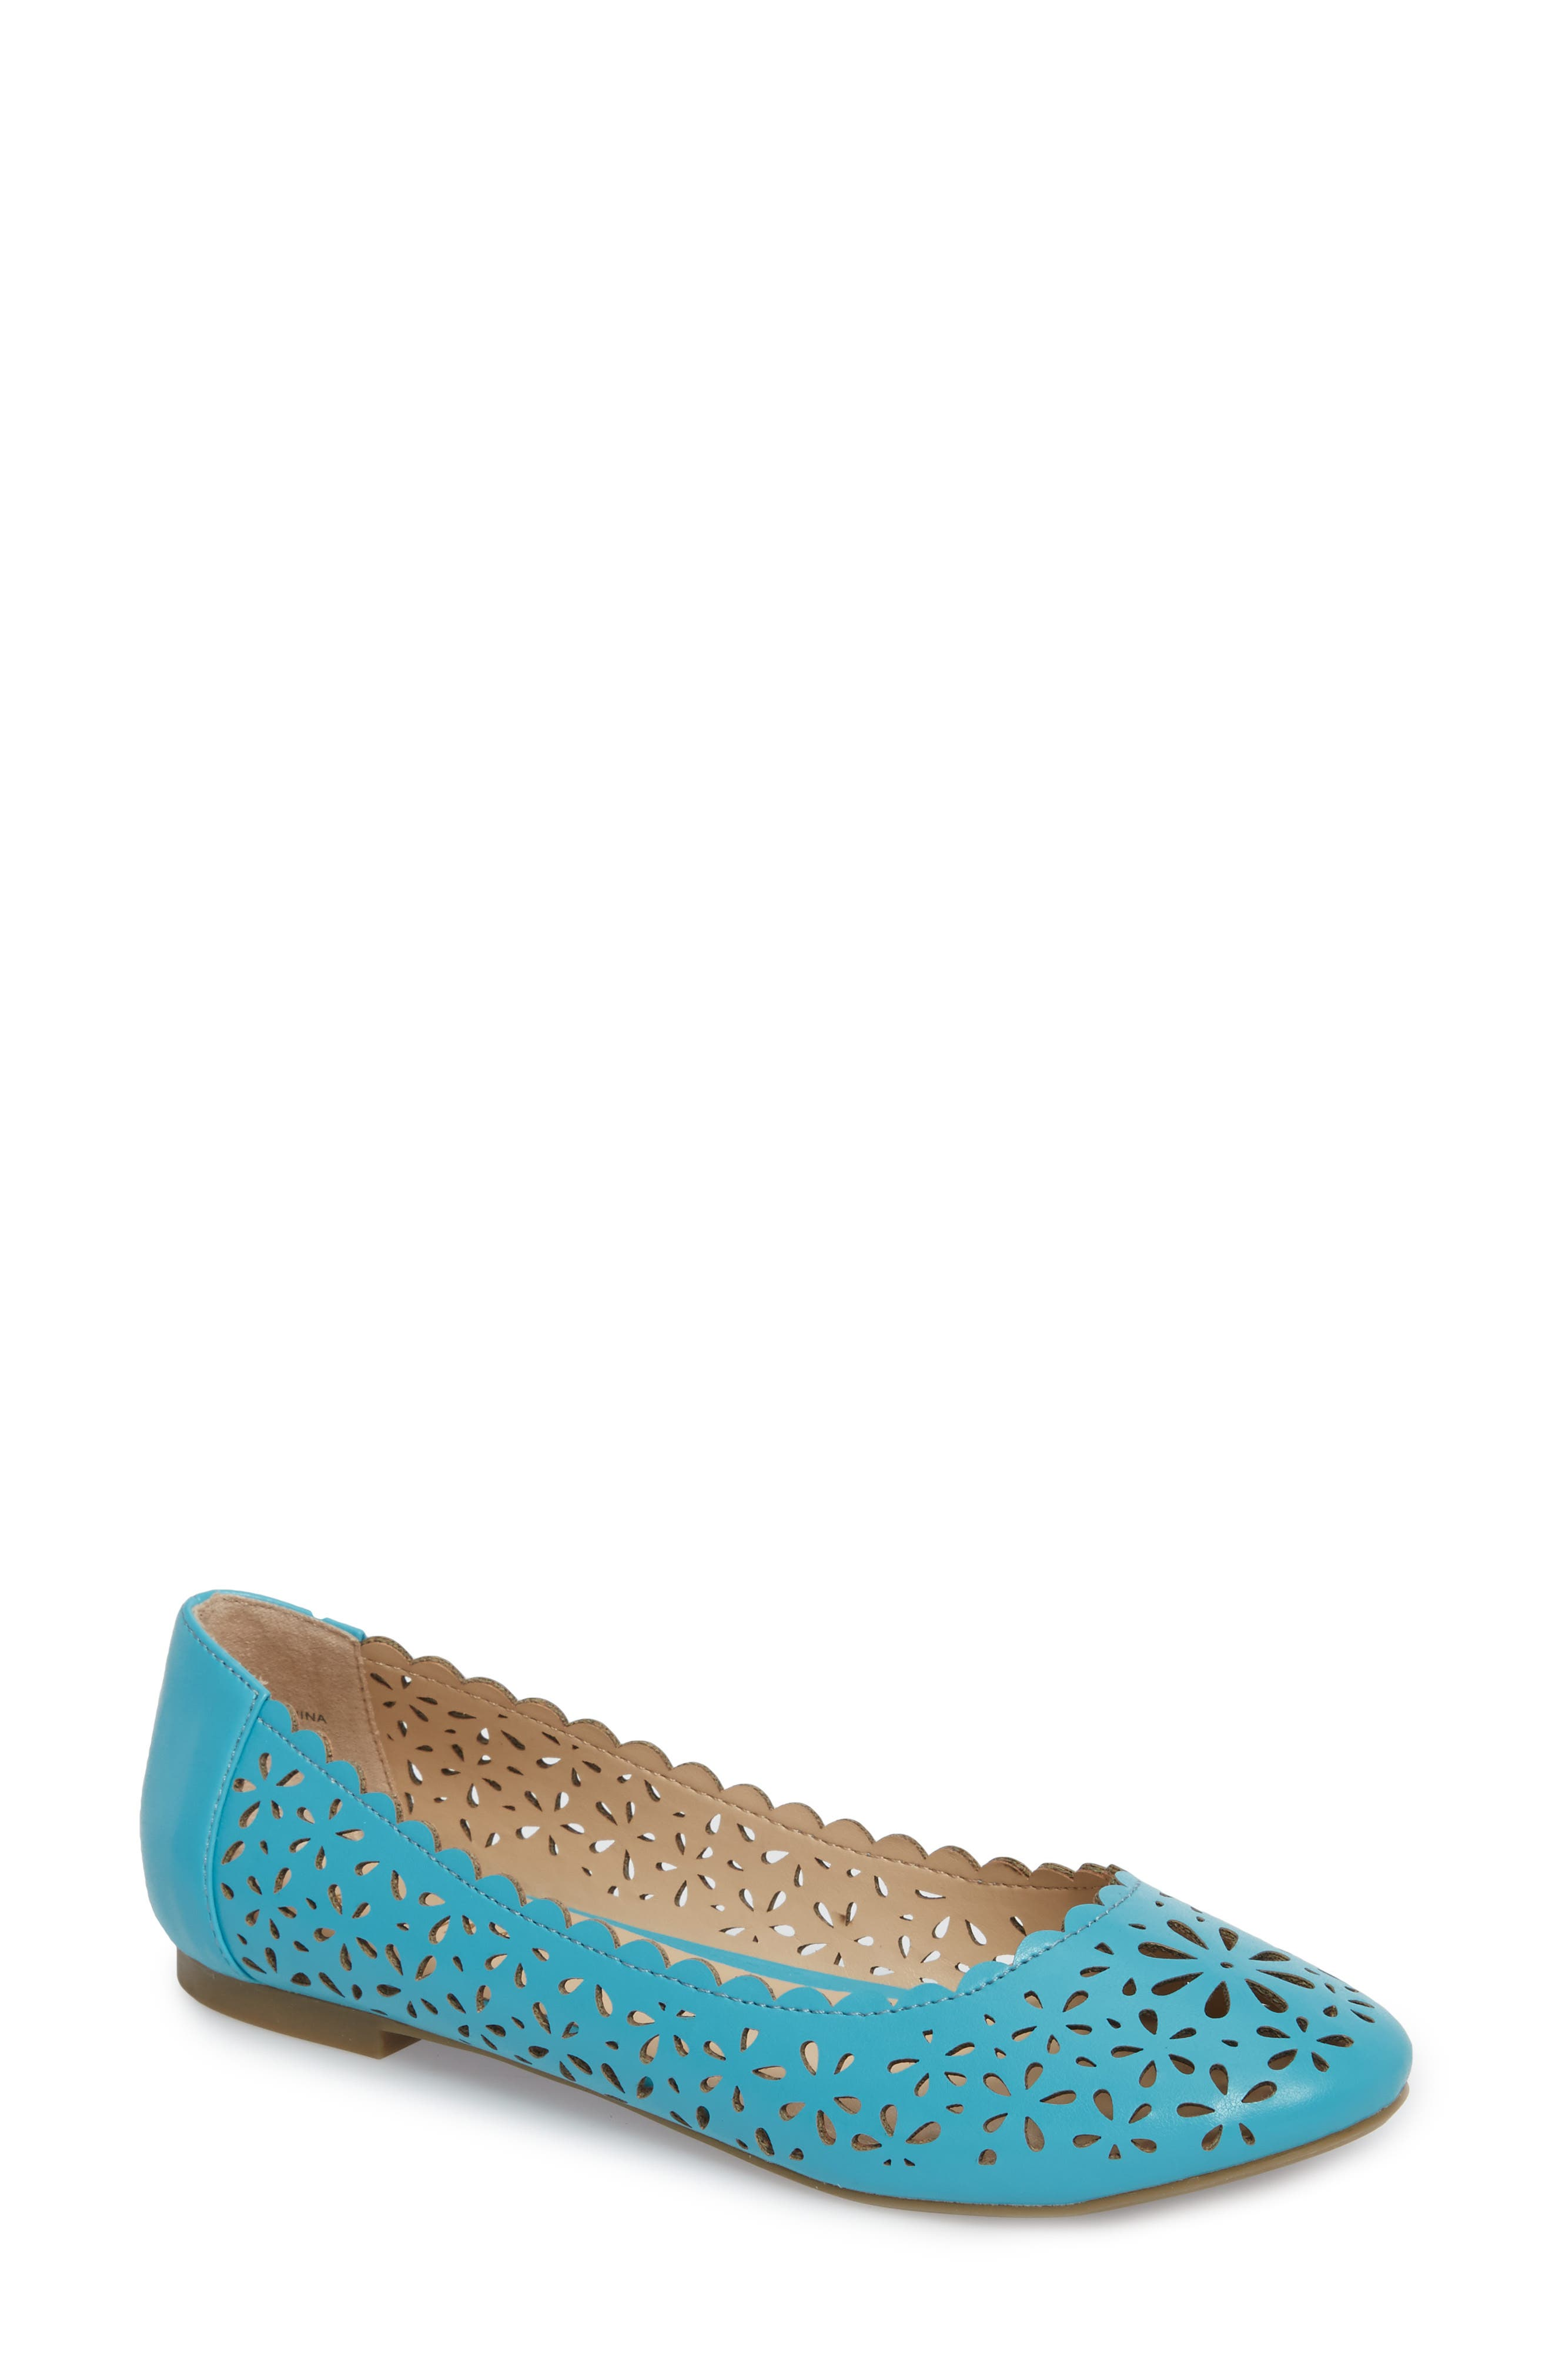 Annora Perforated Flat,                             Main thumbnail 1, color,                             Teal Fabric